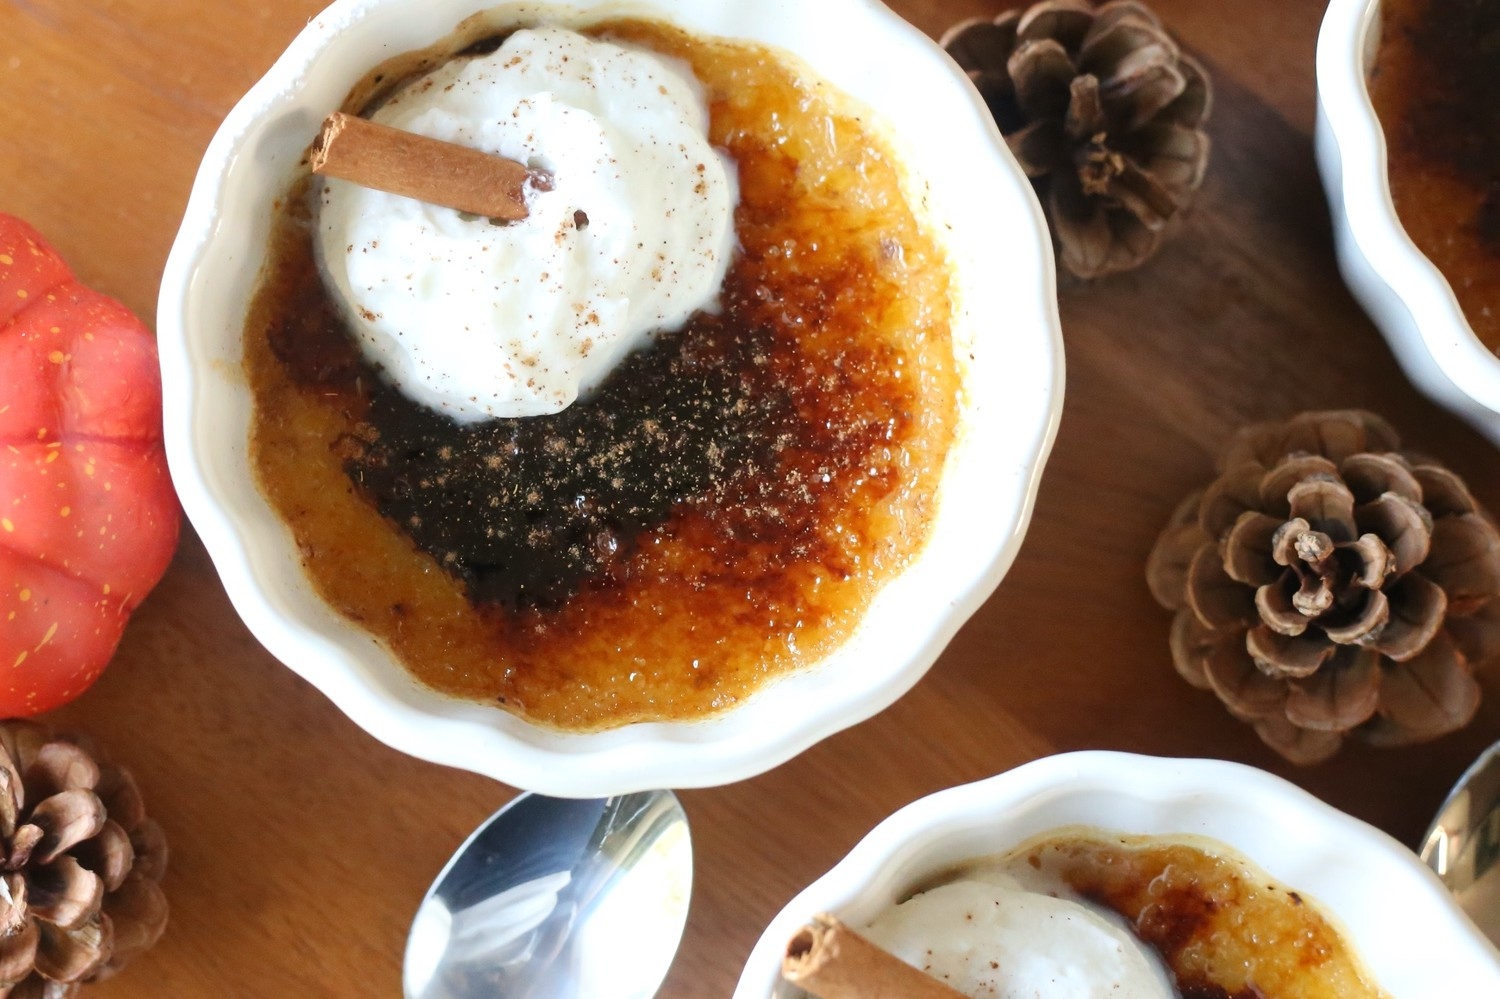 Pumpkin spice crème brûlée with a crackly caramelized sugar crust and rich, creamy pumpkin custard underneath. Topped with a dollop of whipped cream and cinnamon stick for garnish.